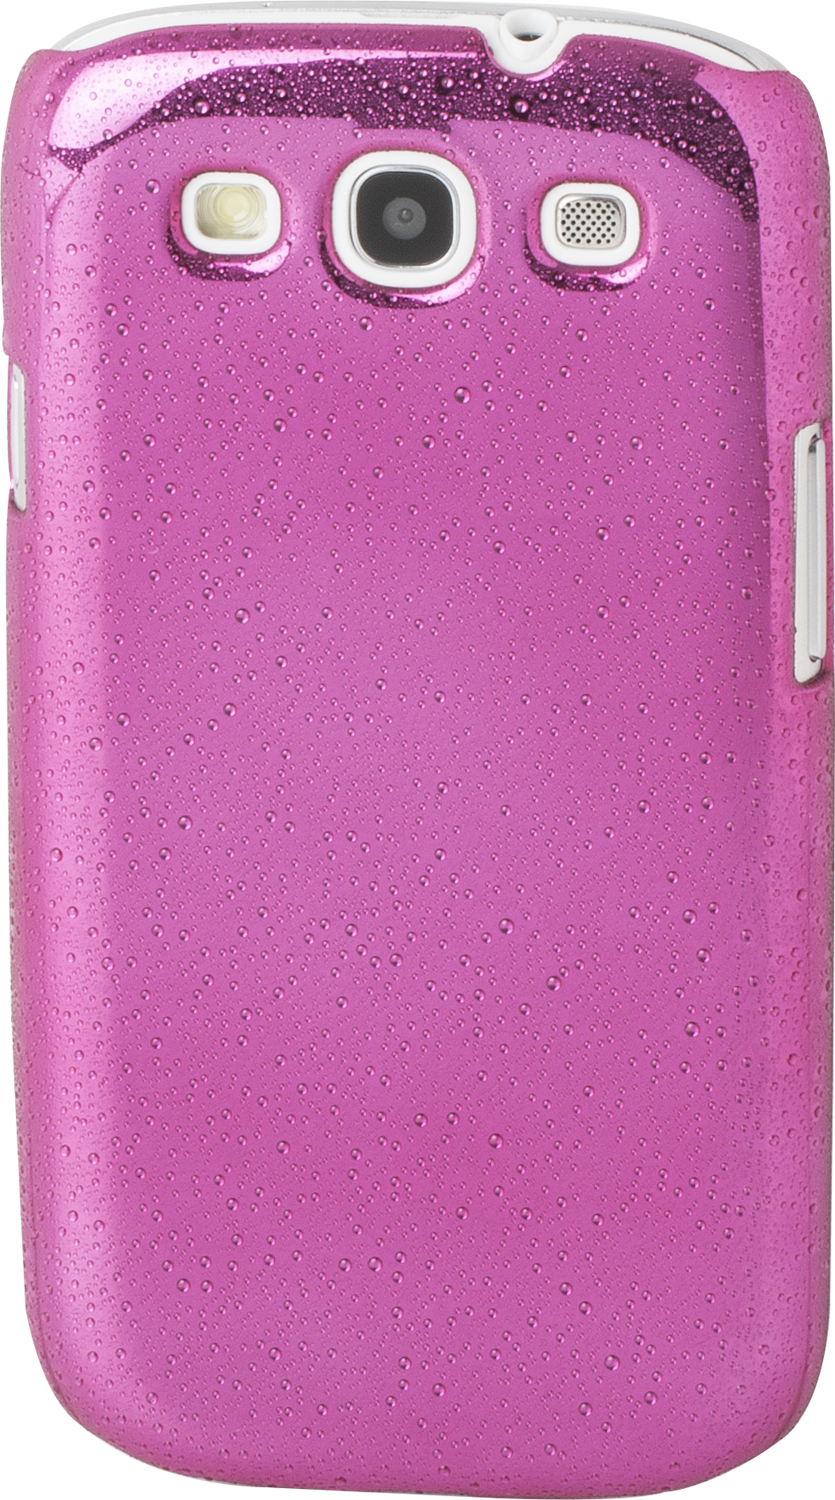 Läs mer om iZound Wet Case Samsung Galaxy S III Pink